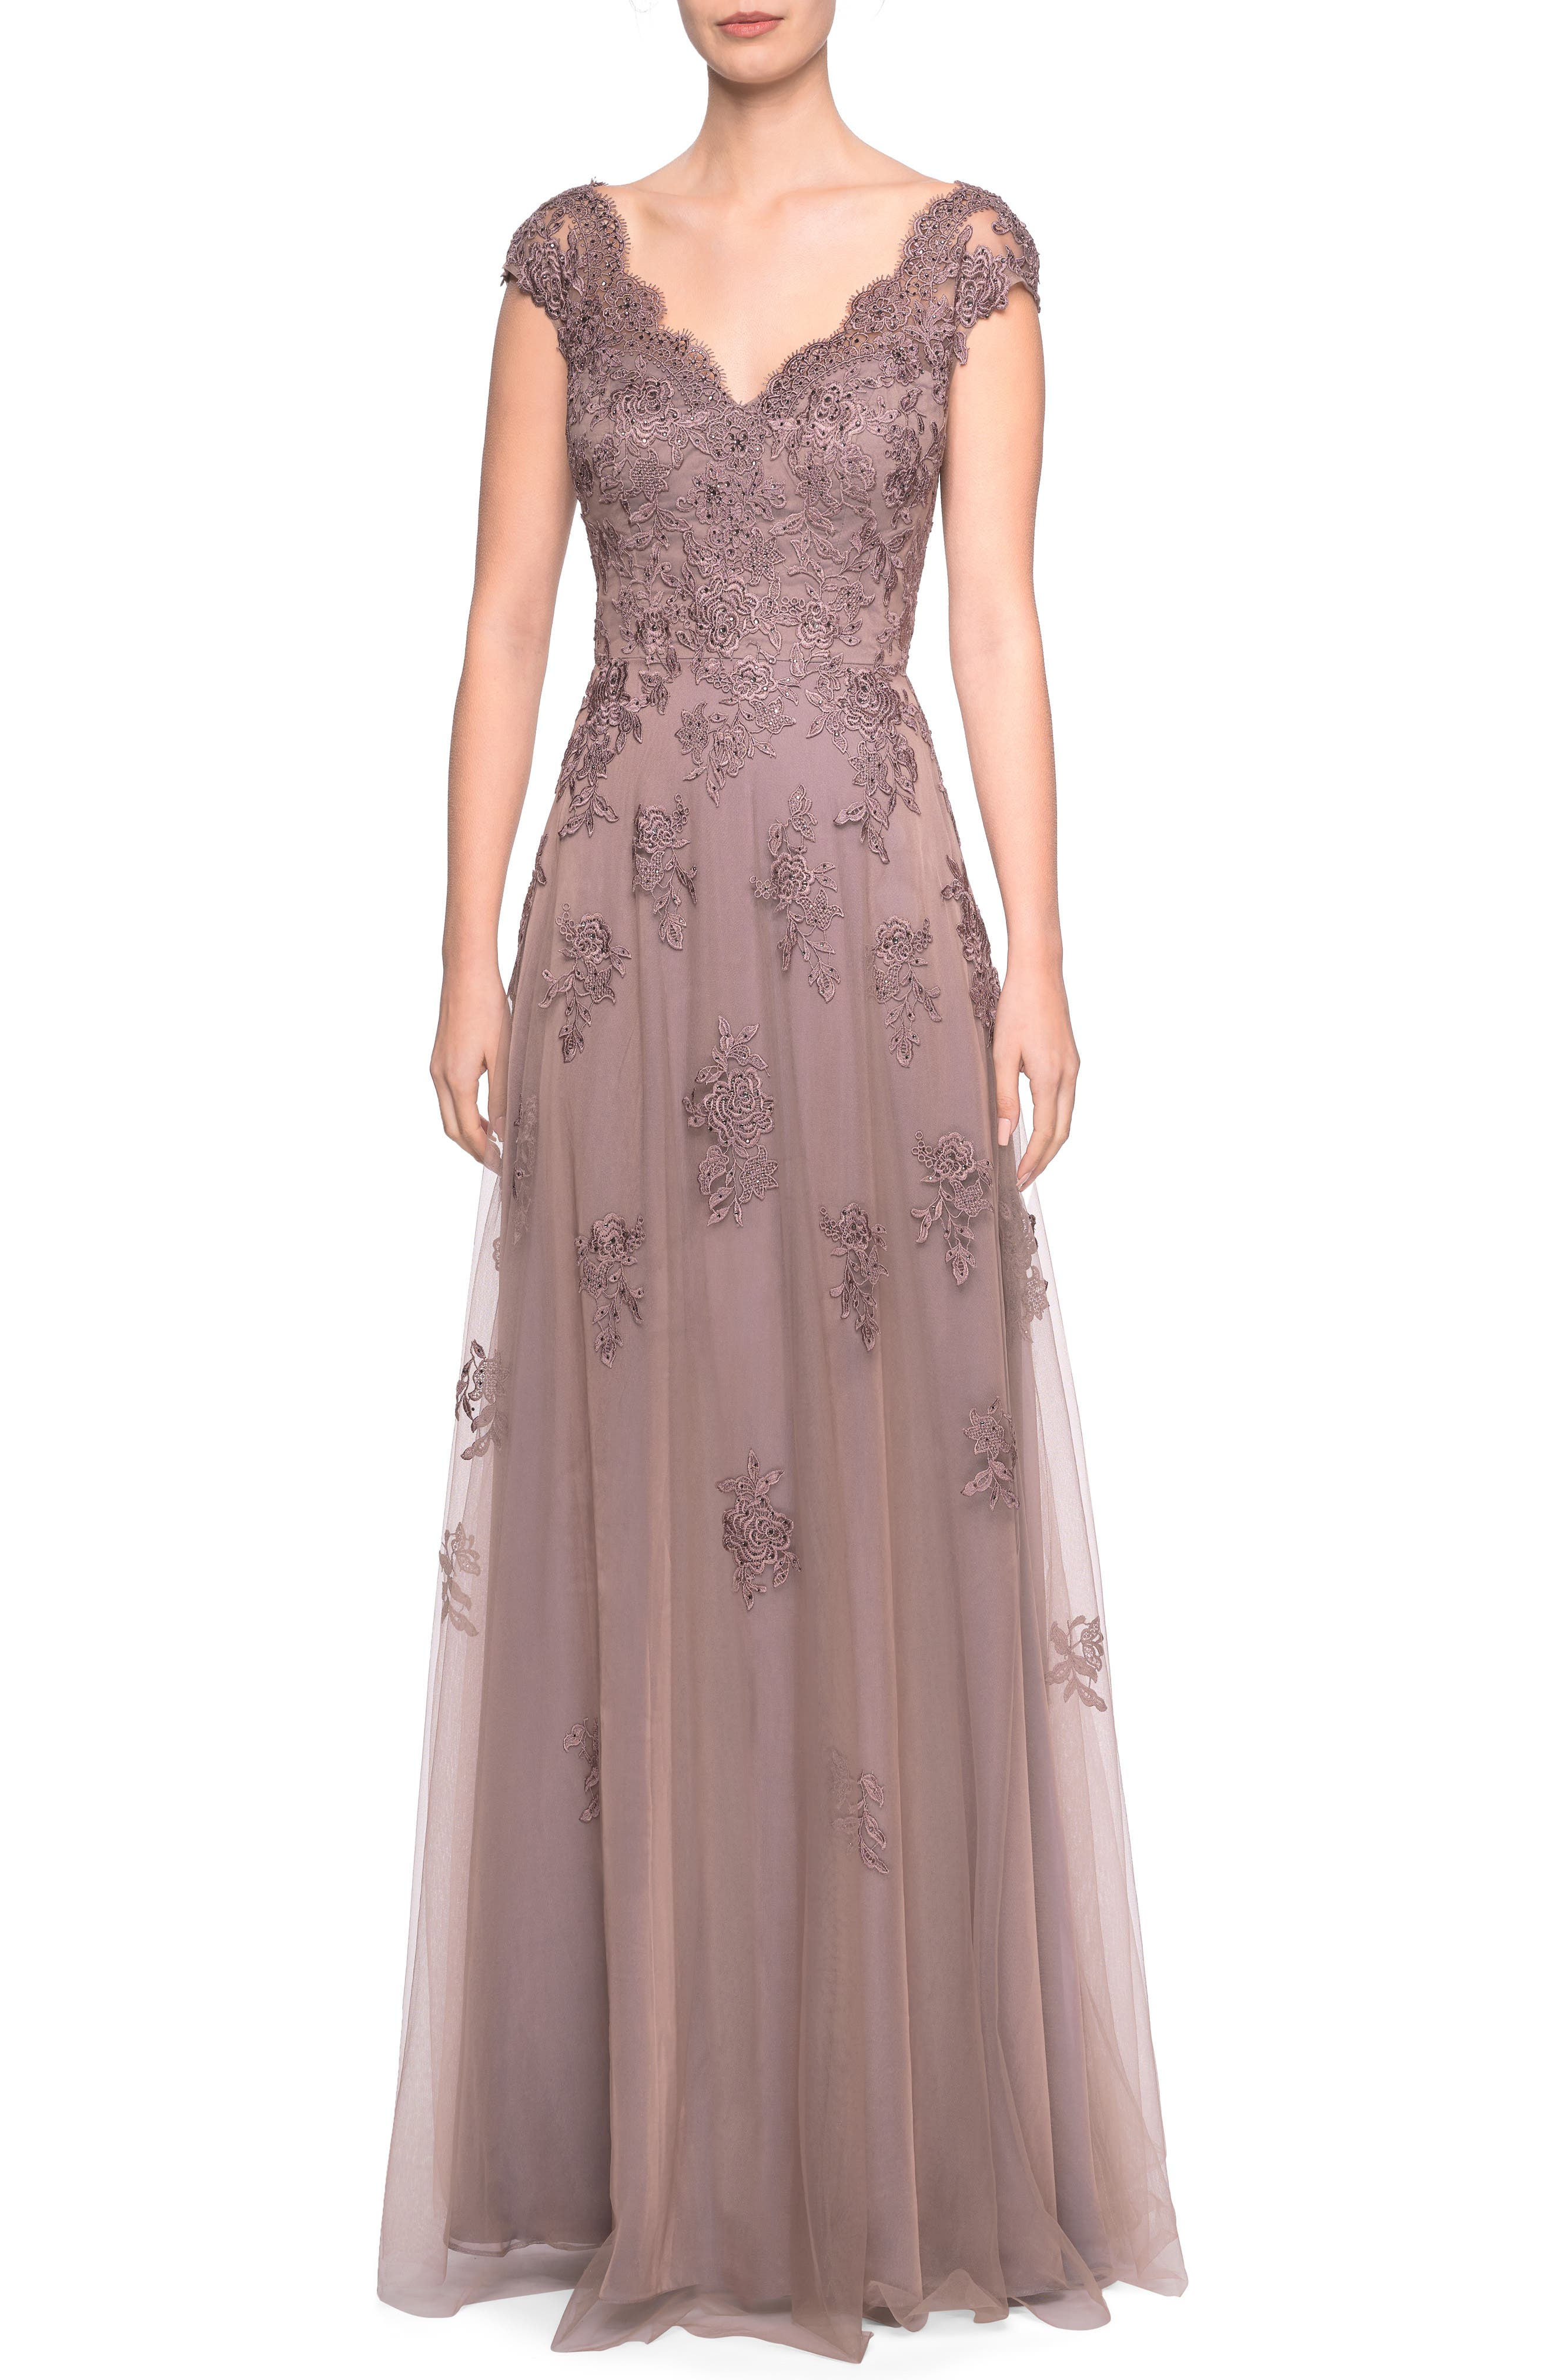 Tulle & Lace Evening Dress,                             Main thumbnail 1, color,                             COCOA